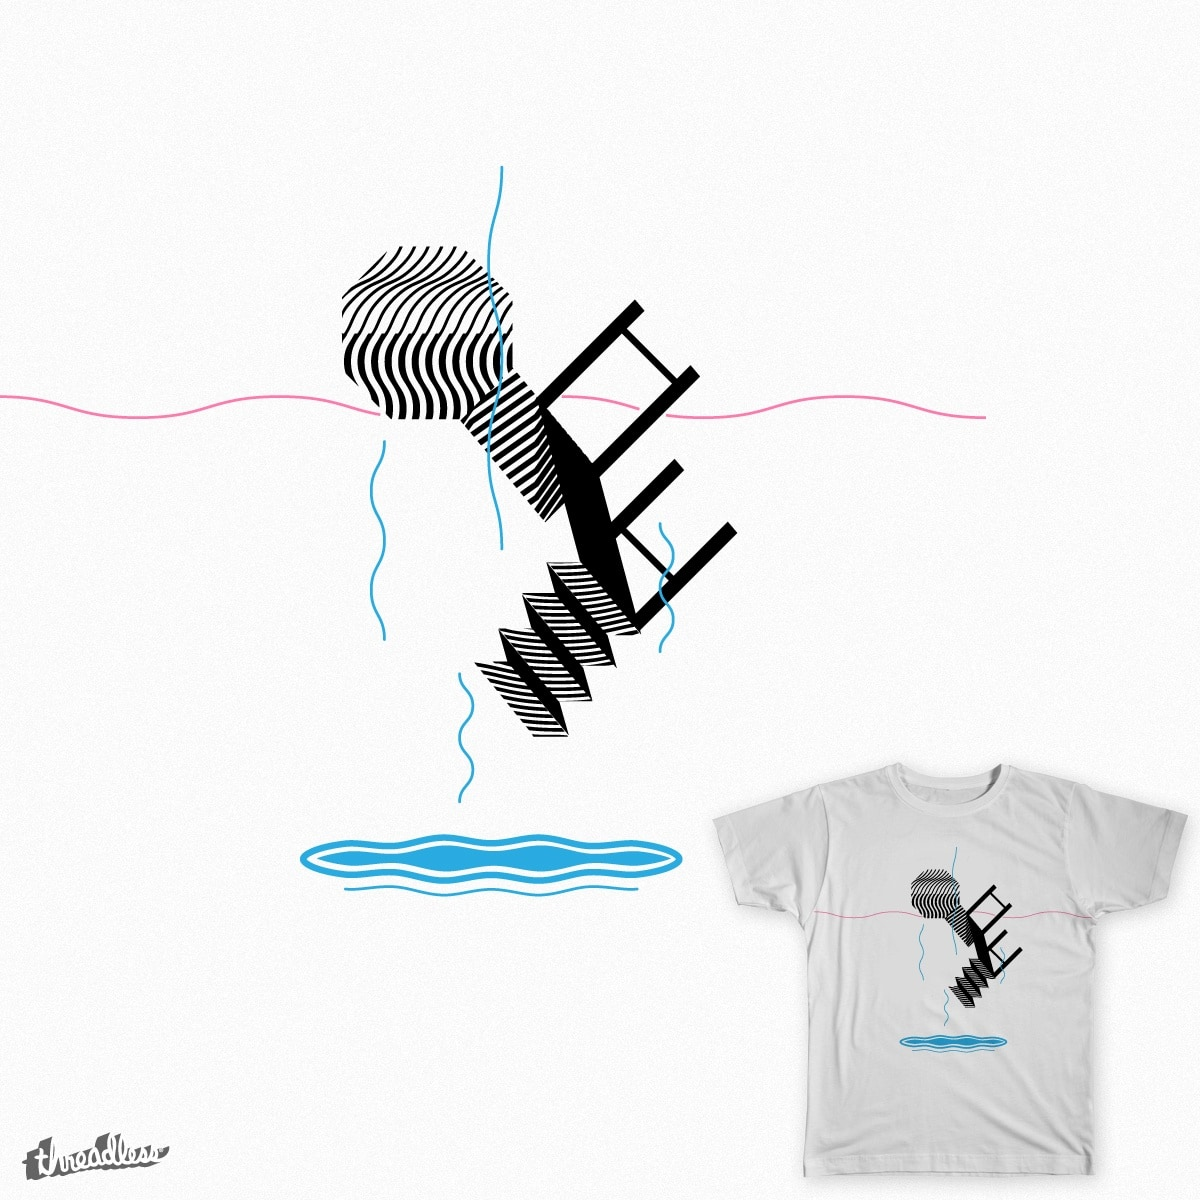 Float on by Panzer72 on Threadless